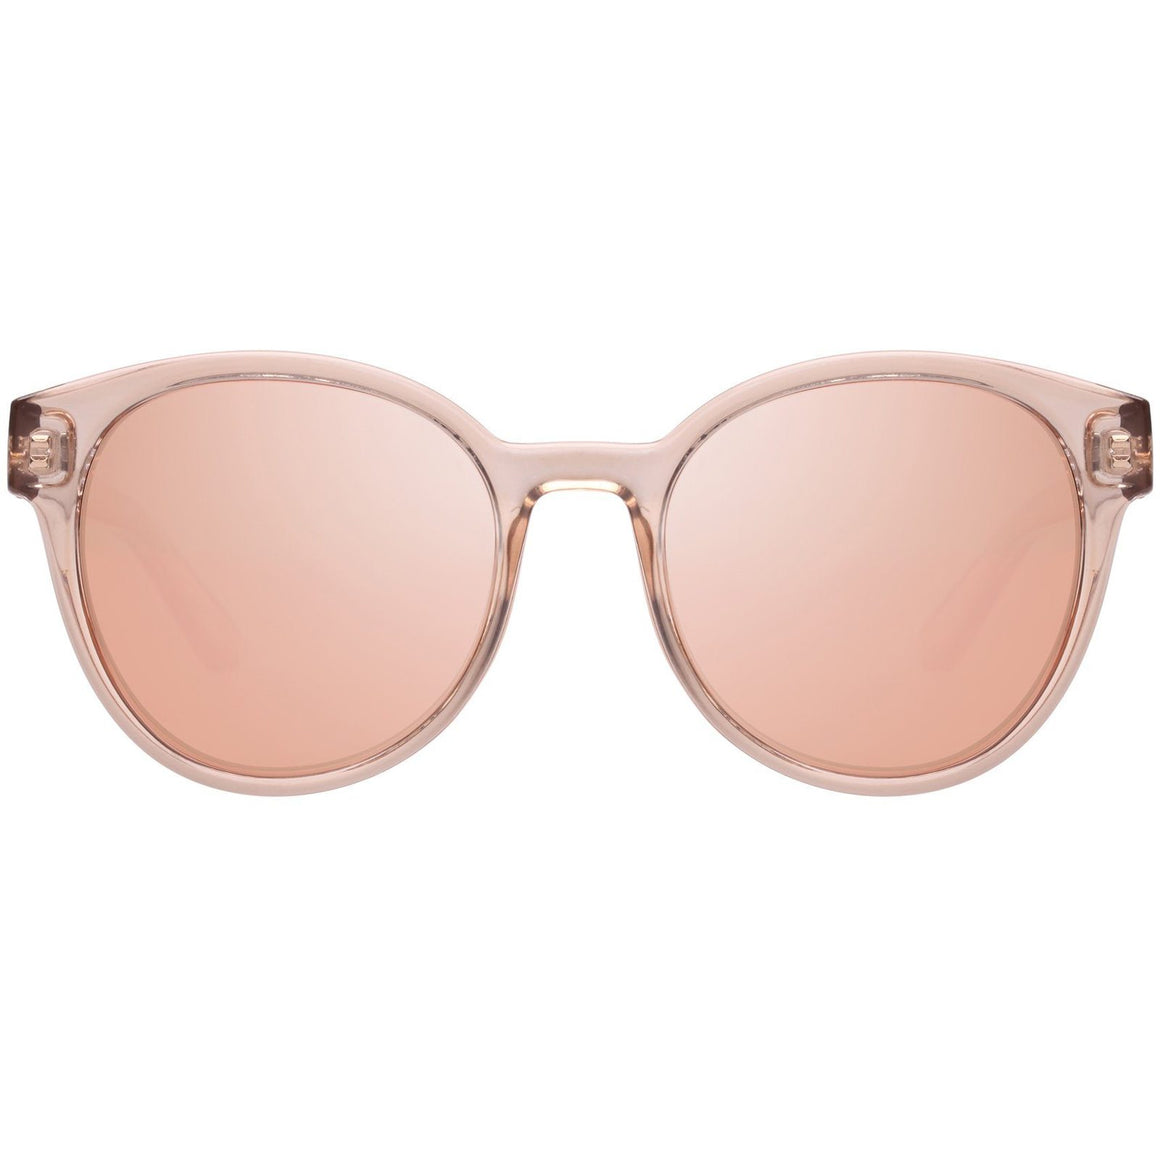 Paramount Tan-Brass Mirror-Sunglasses-Le Specs-Max & Riley